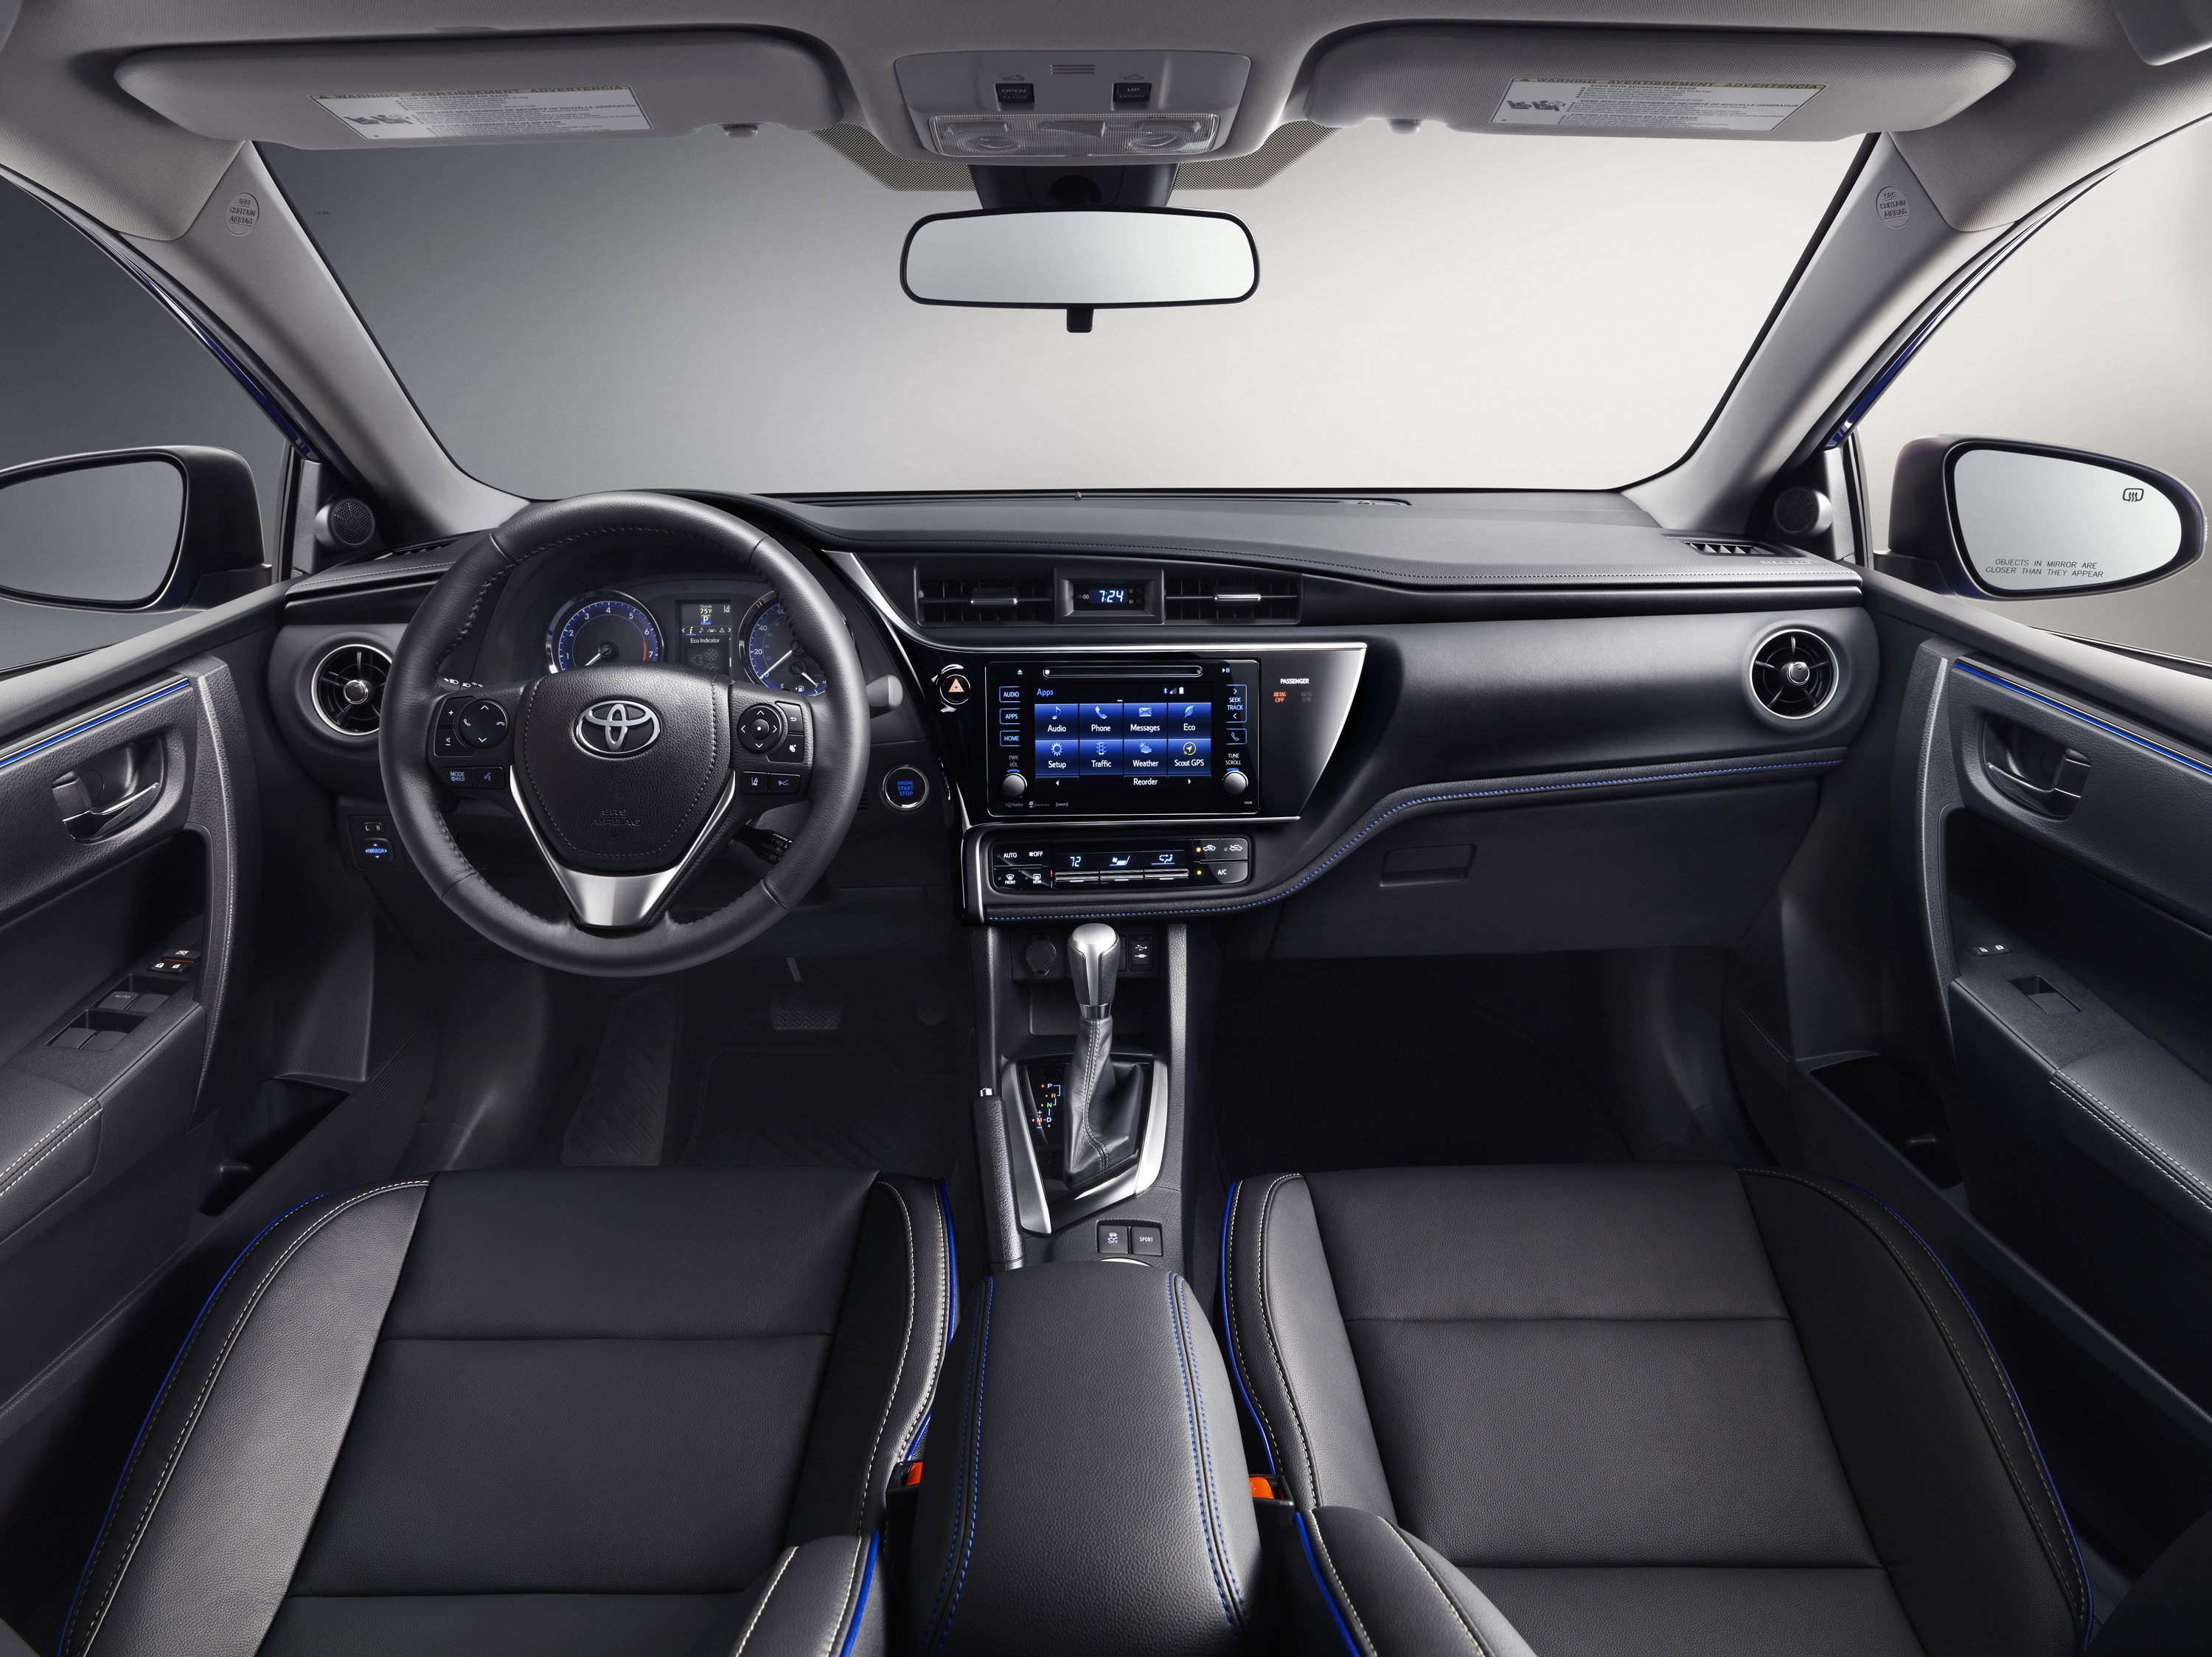 2017 Toyota Corolla Interior @ Milton Toyota in Greater Toronto Area